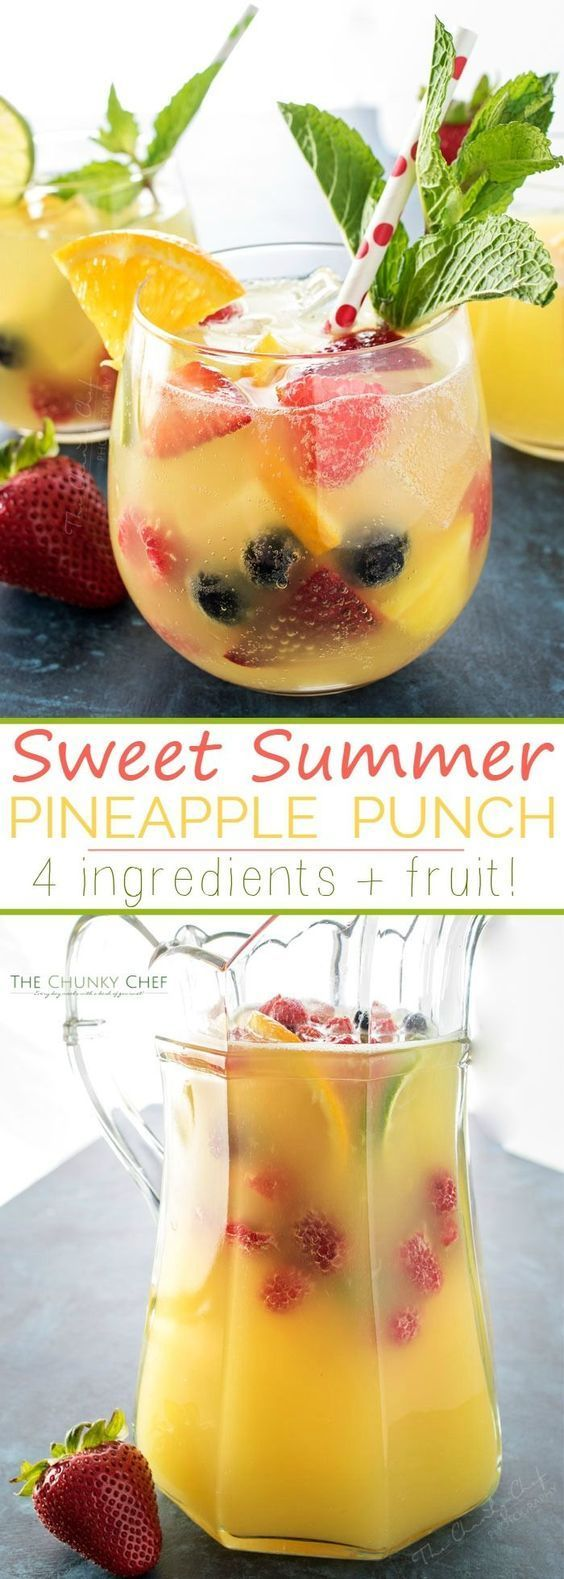 Summer Pineapple Punch | This sweet and easy to make pineapple punch will be the hit of any party! Just 4 simple ingredients plus fresh fruit and pretty garnishes!